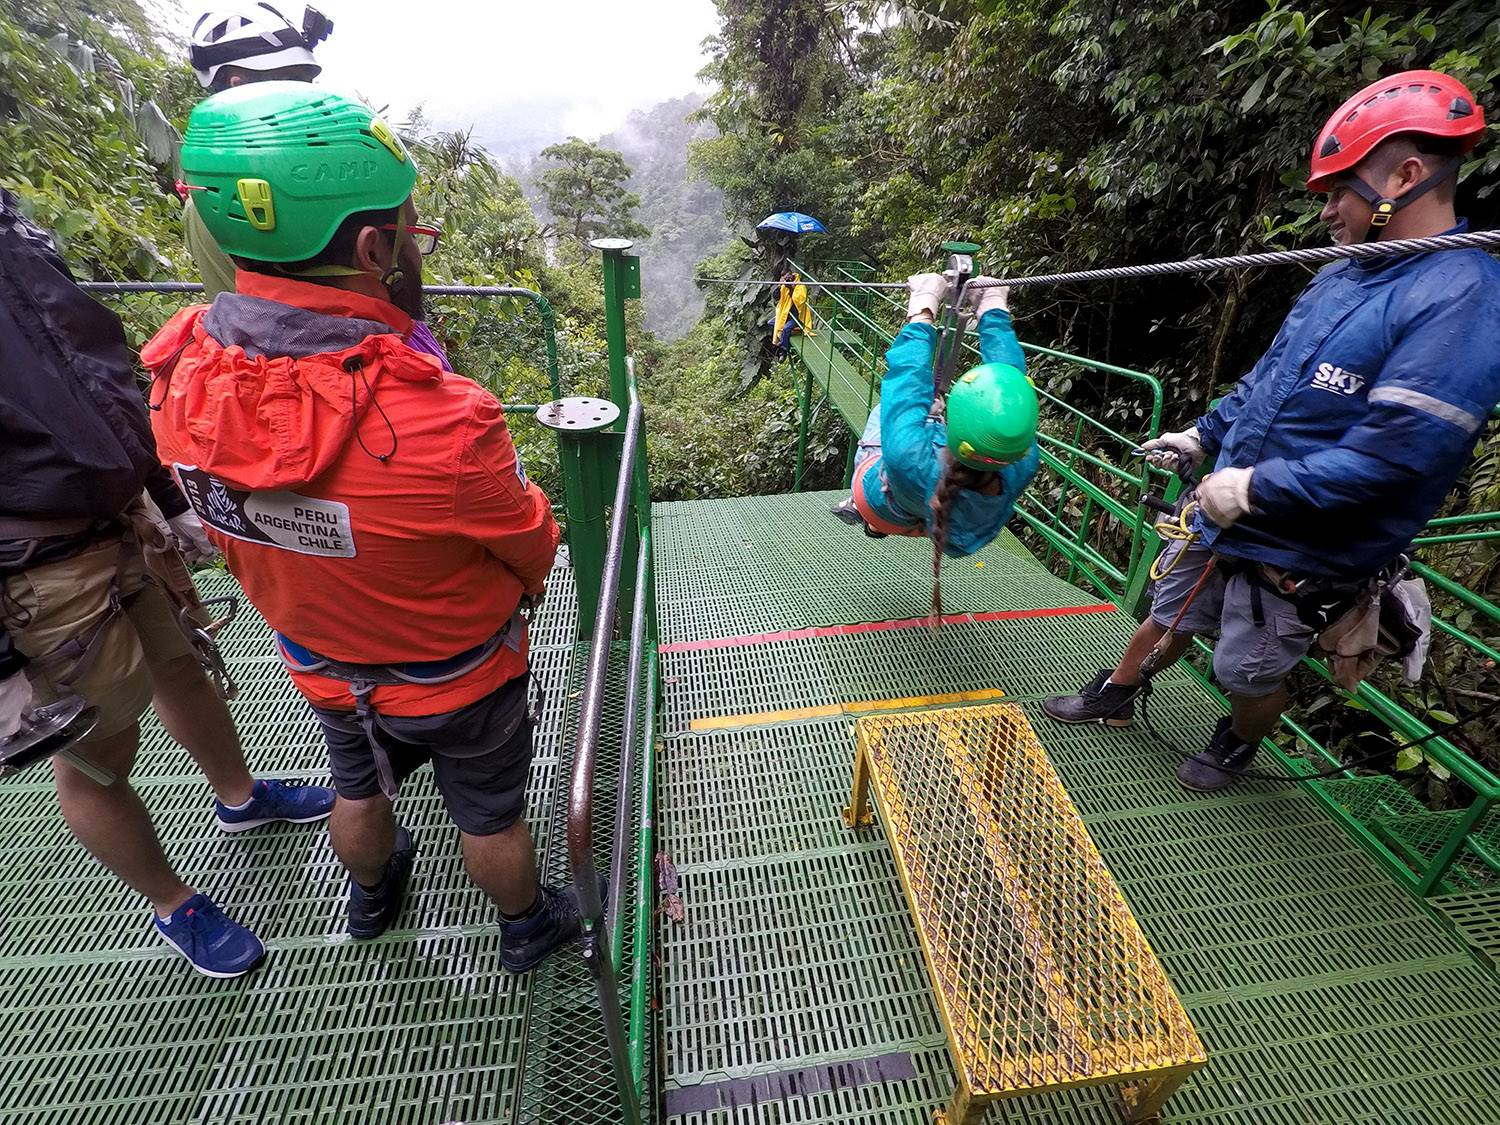 Things to do in Arenal Costa Rica Zip lining